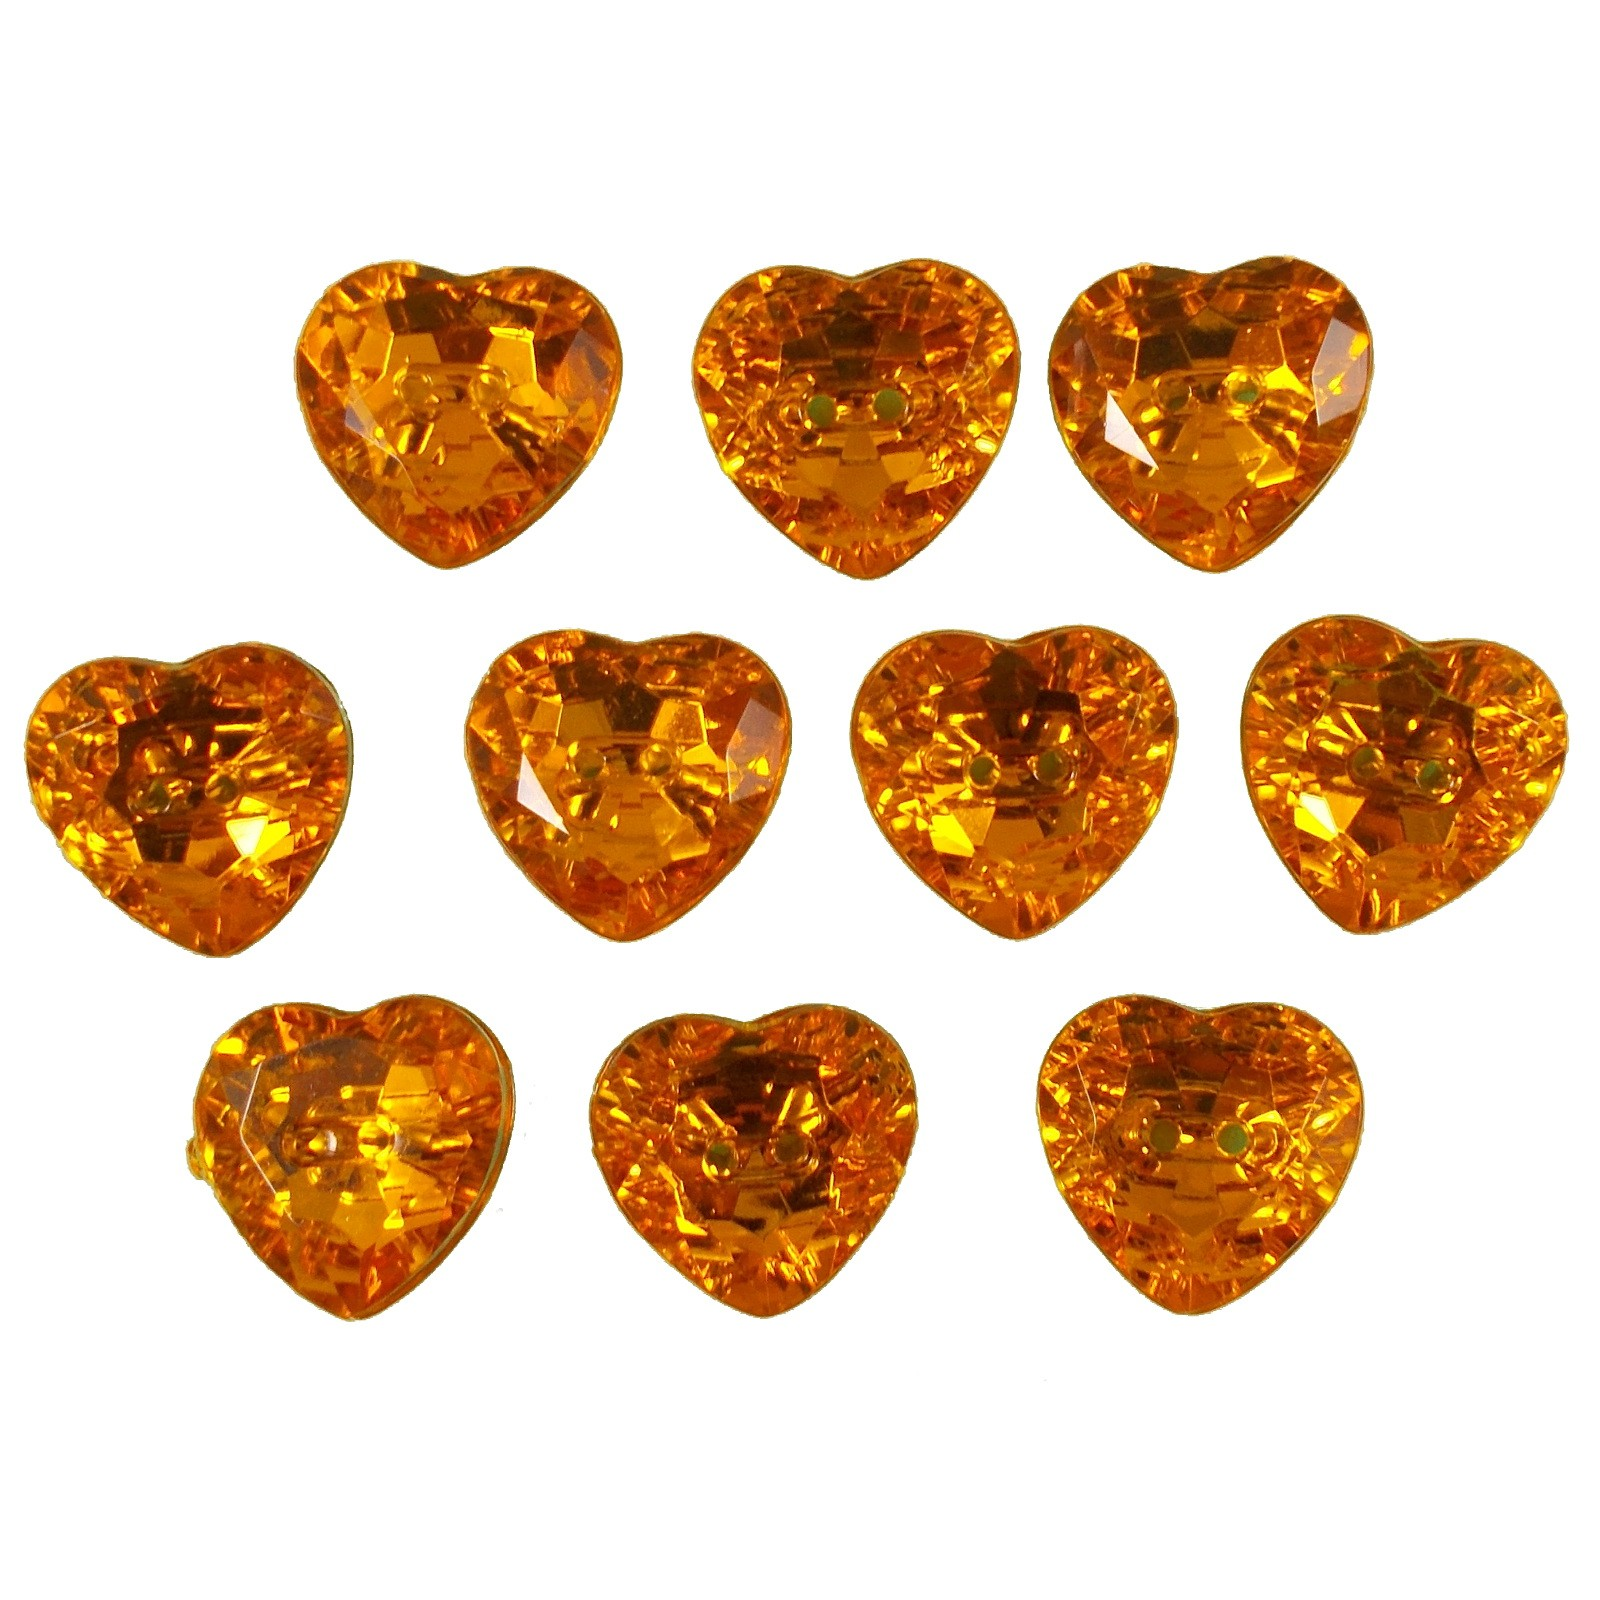 Acrylic Crystal Effect Heart Shape Buttons 16mm Amber Pack of 10